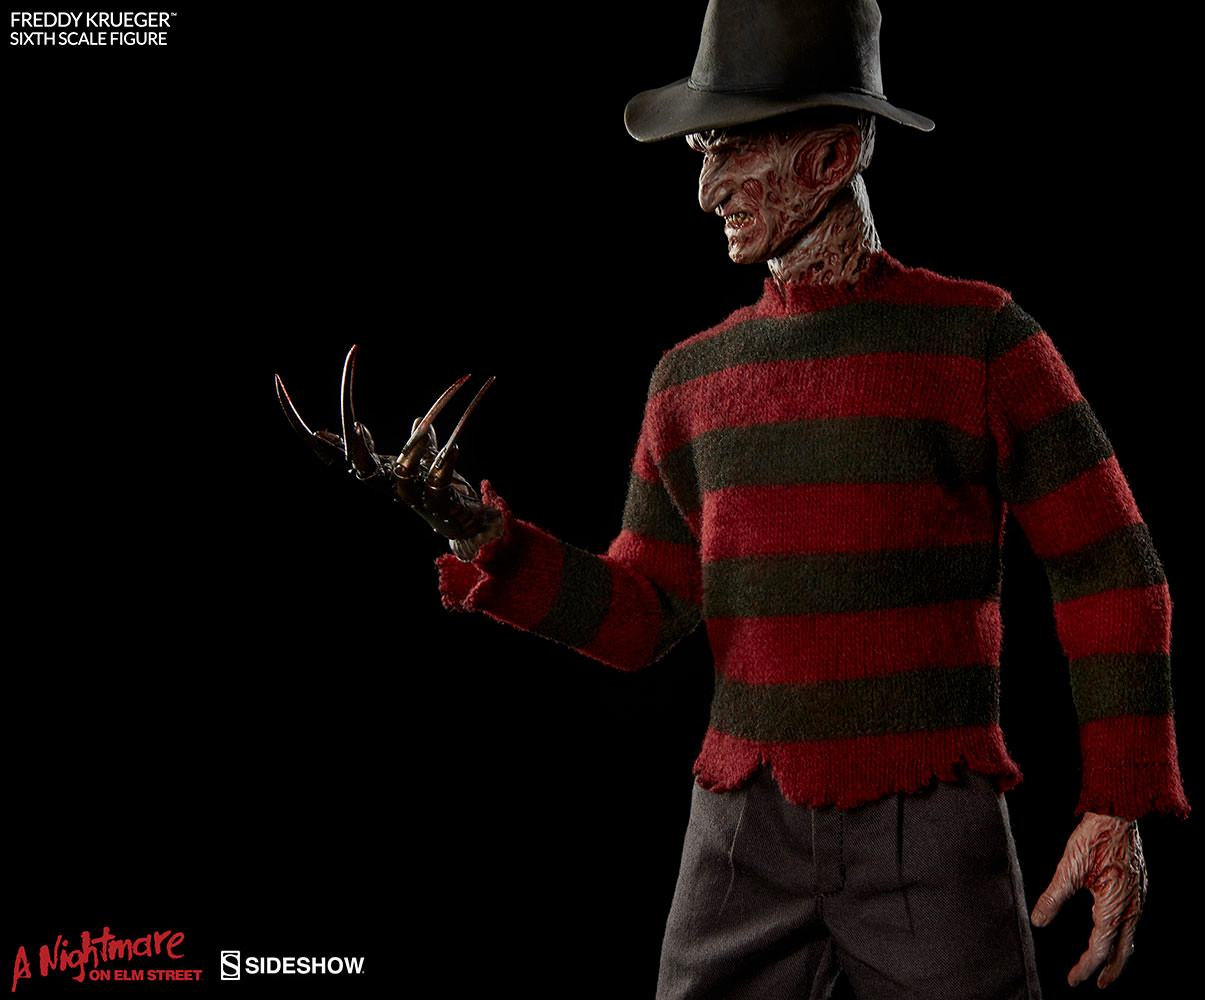 freddy-krueger-sixth-scale-figure-sideshow-02